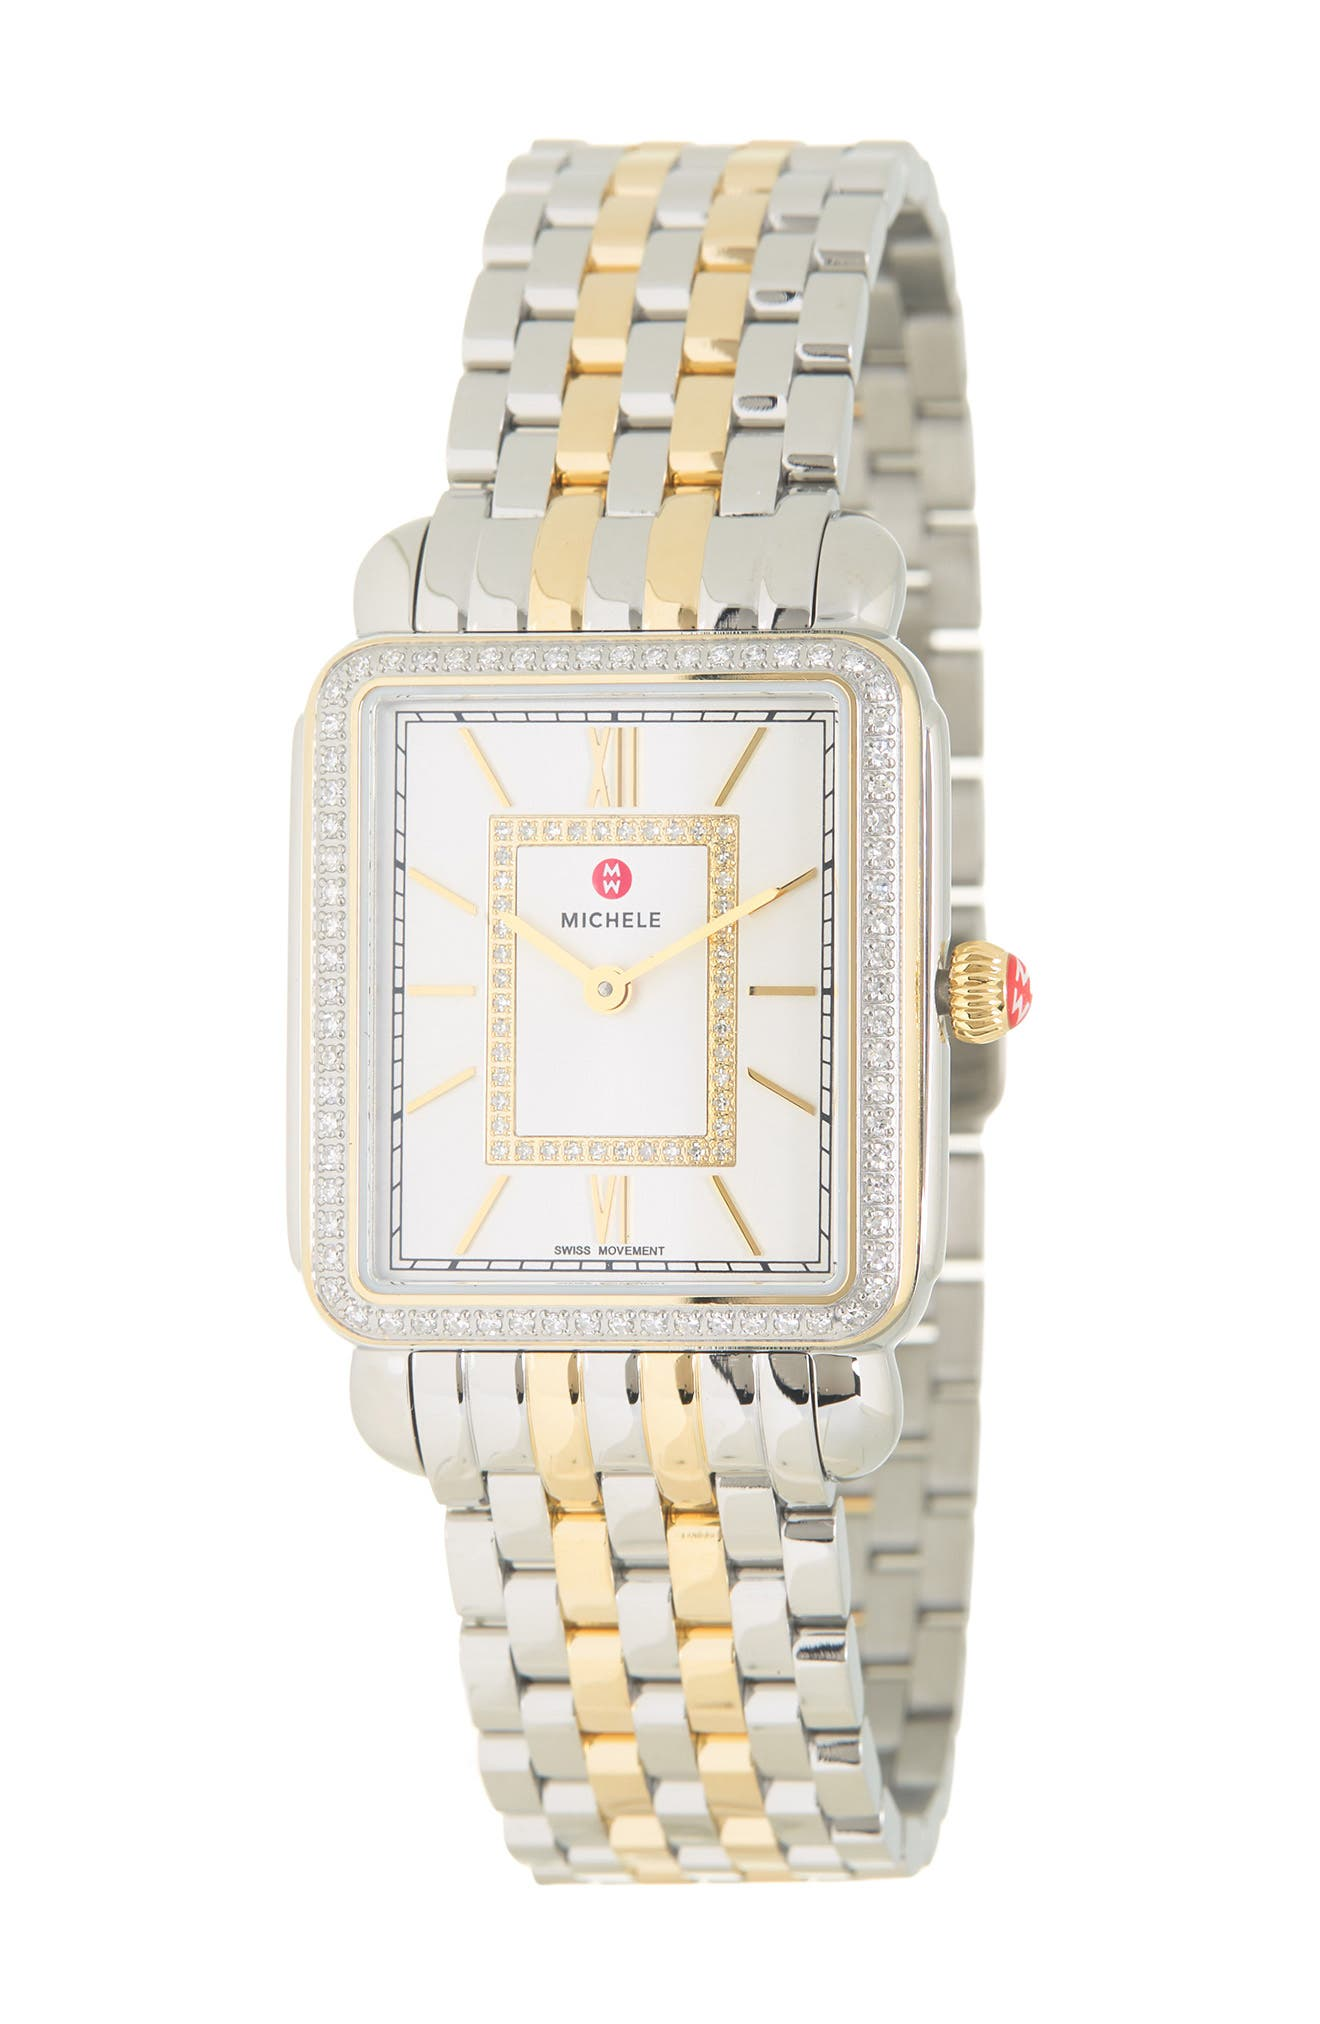 Image of Michele Women's Deco II Mid Two-Tone 18K Gold Diamond Watch, 26mm - 0.45 ctw